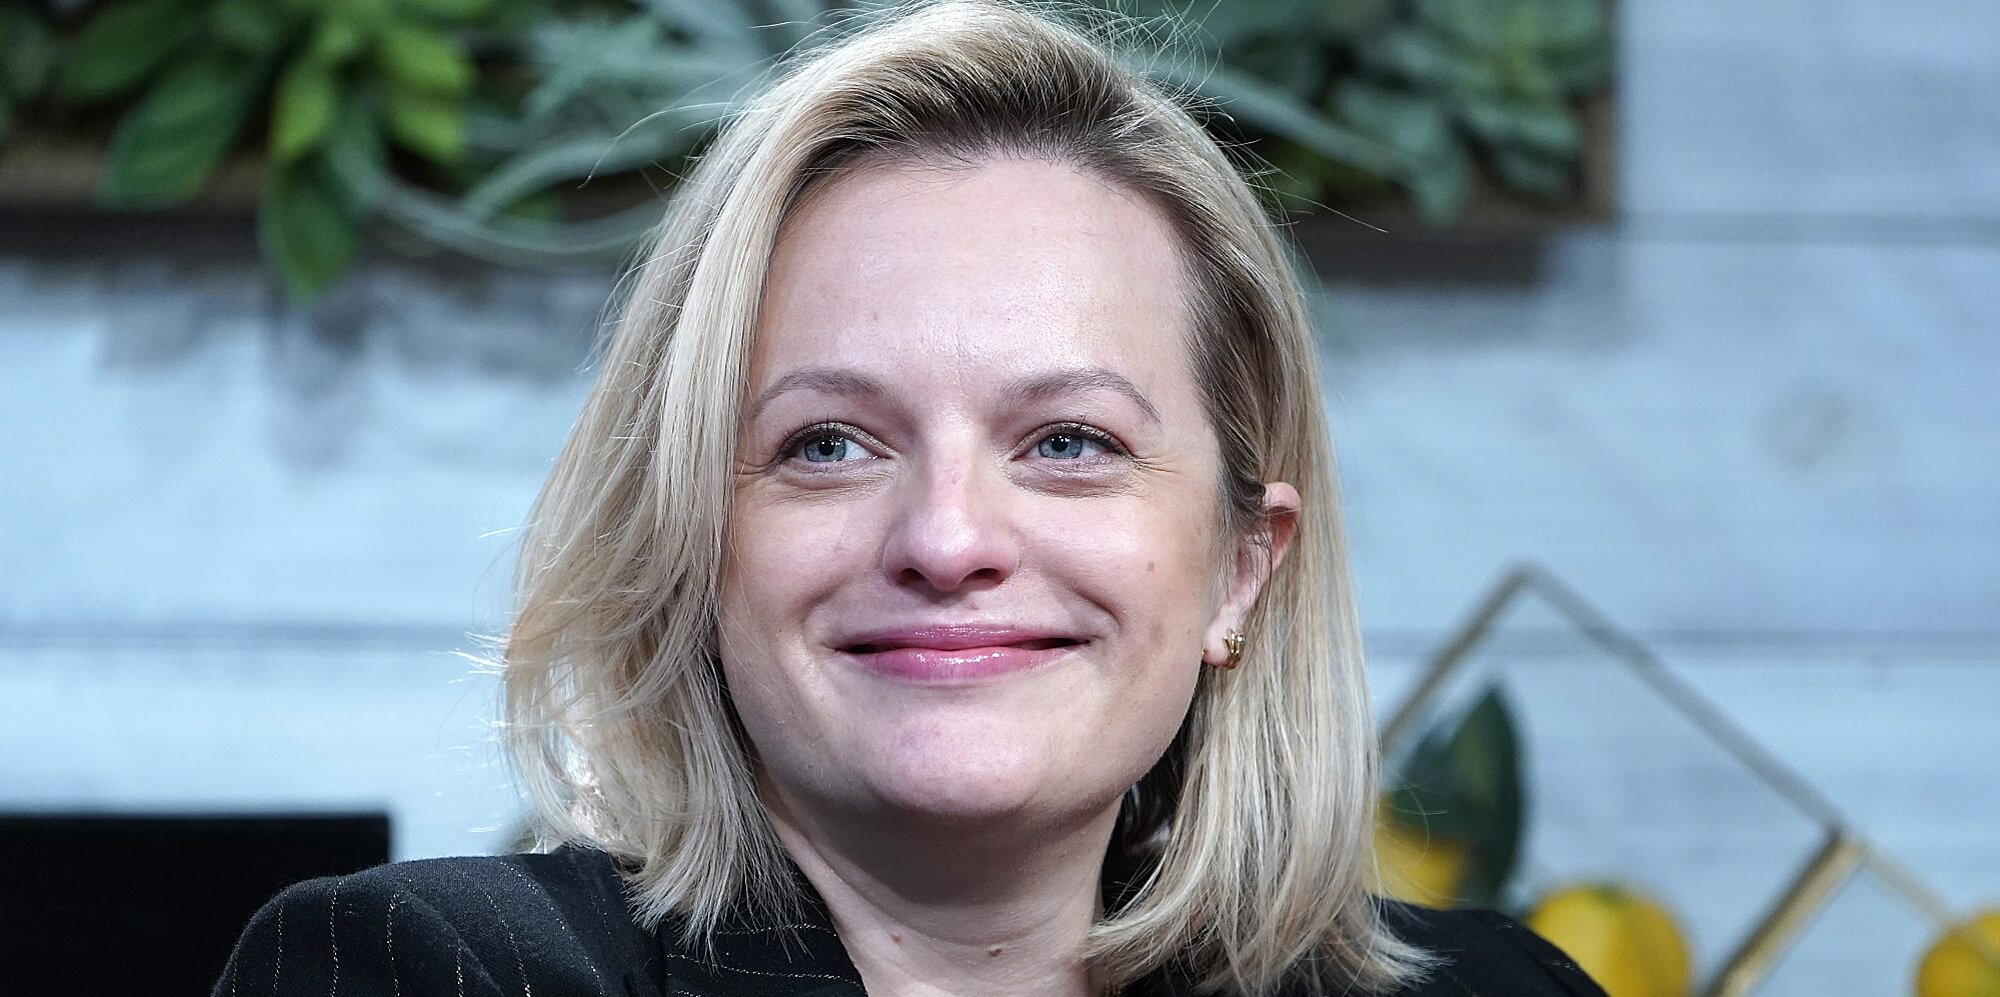 Elisabeth Moss' Shaggy Pixie Cut Is a Total '90s Vibe Inspired by Winona Ryder